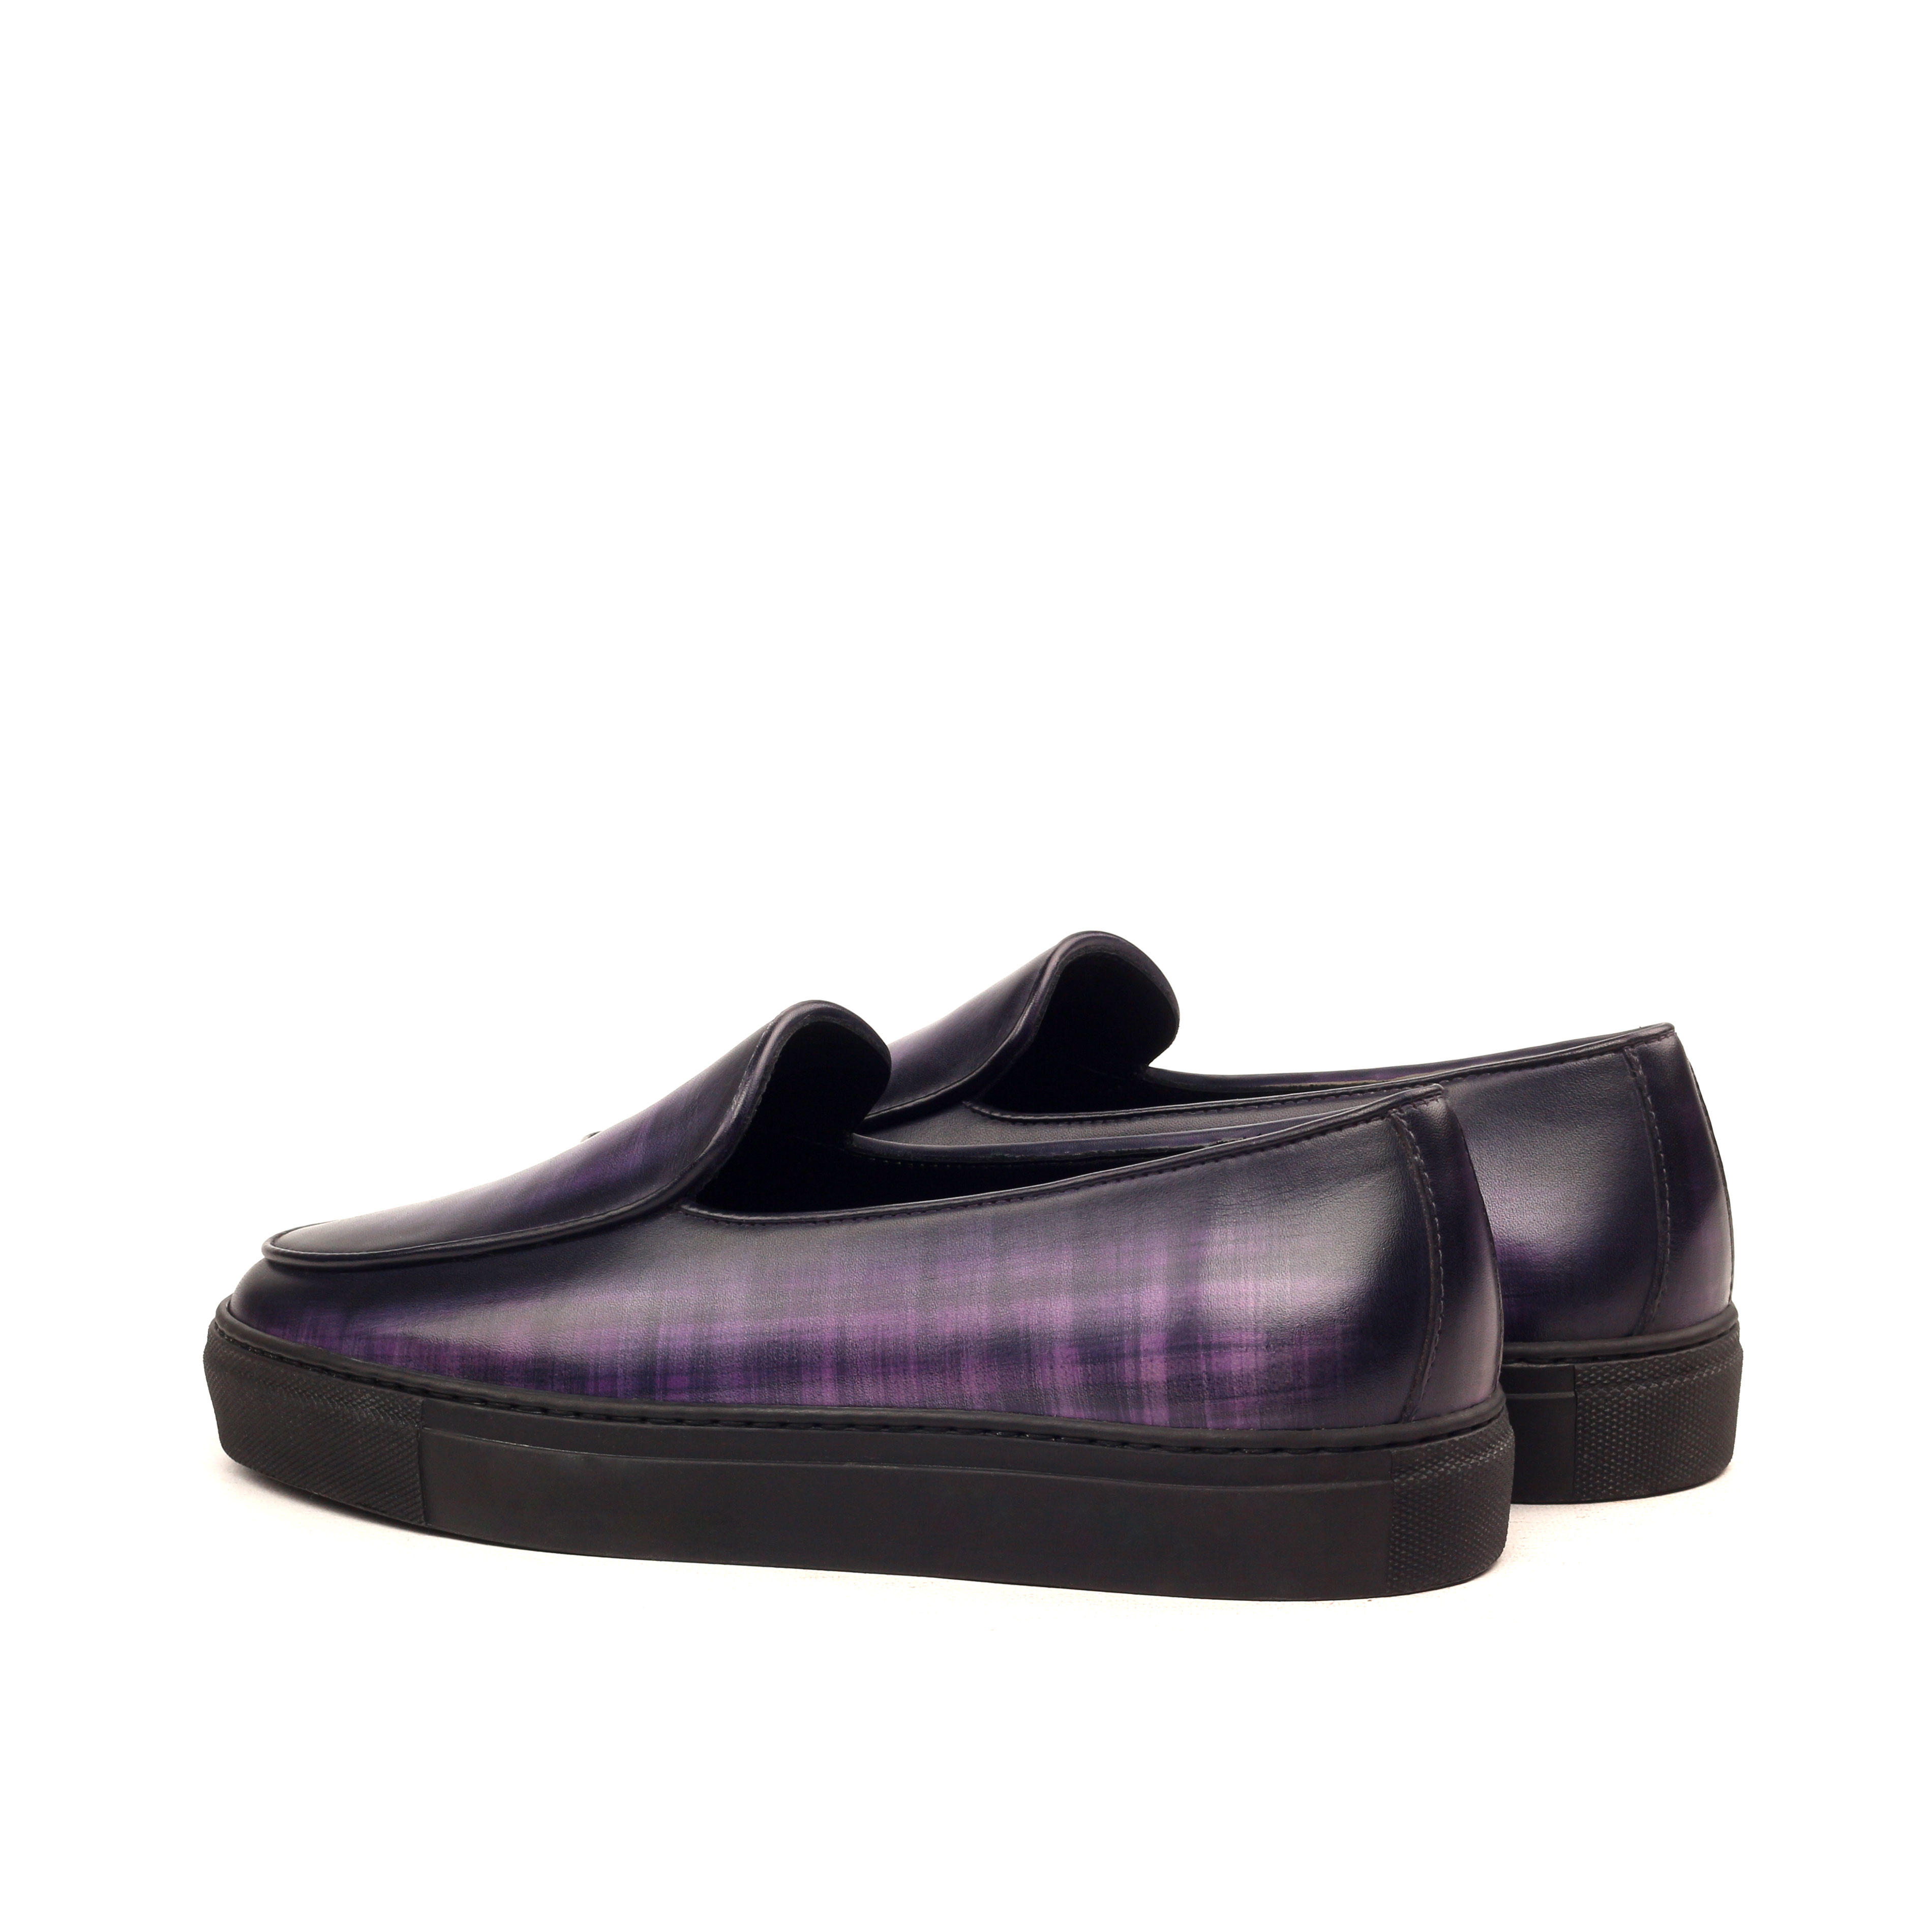 Manor of London 'The Dandy' Purple Patina Calfskin Belgian Trainer Luxury Custom Initials Monogrammed Back Side View